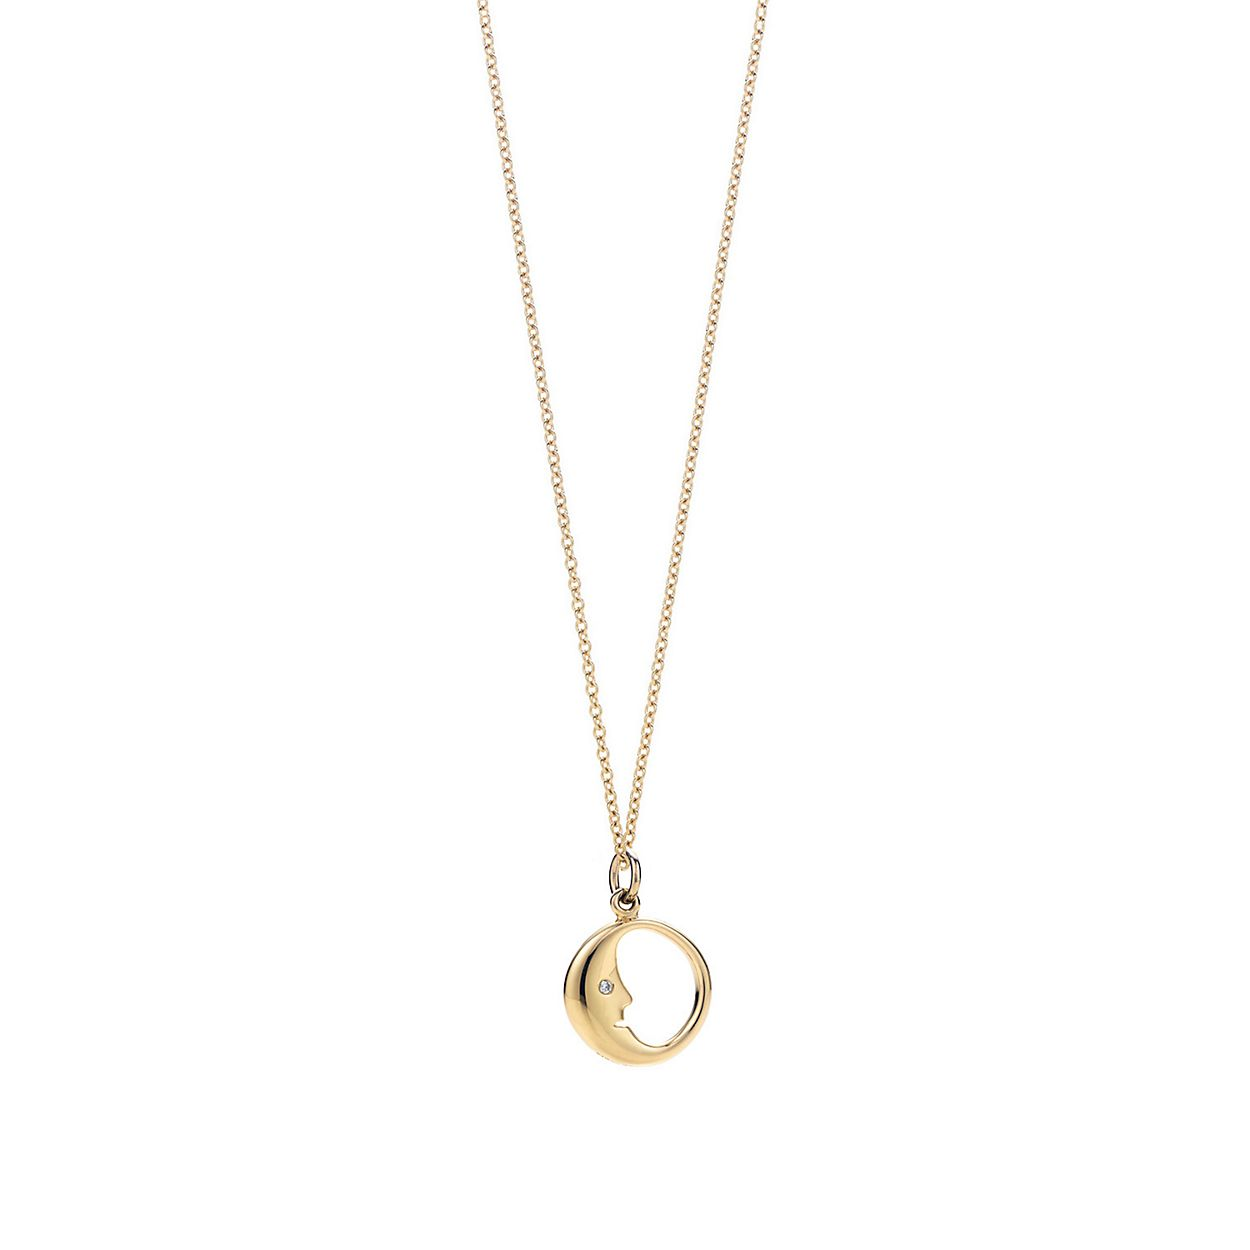 Man in the moon charm diamonds 18k gold on a chain tiffany co man in the moon charm pendant aloadofball Images